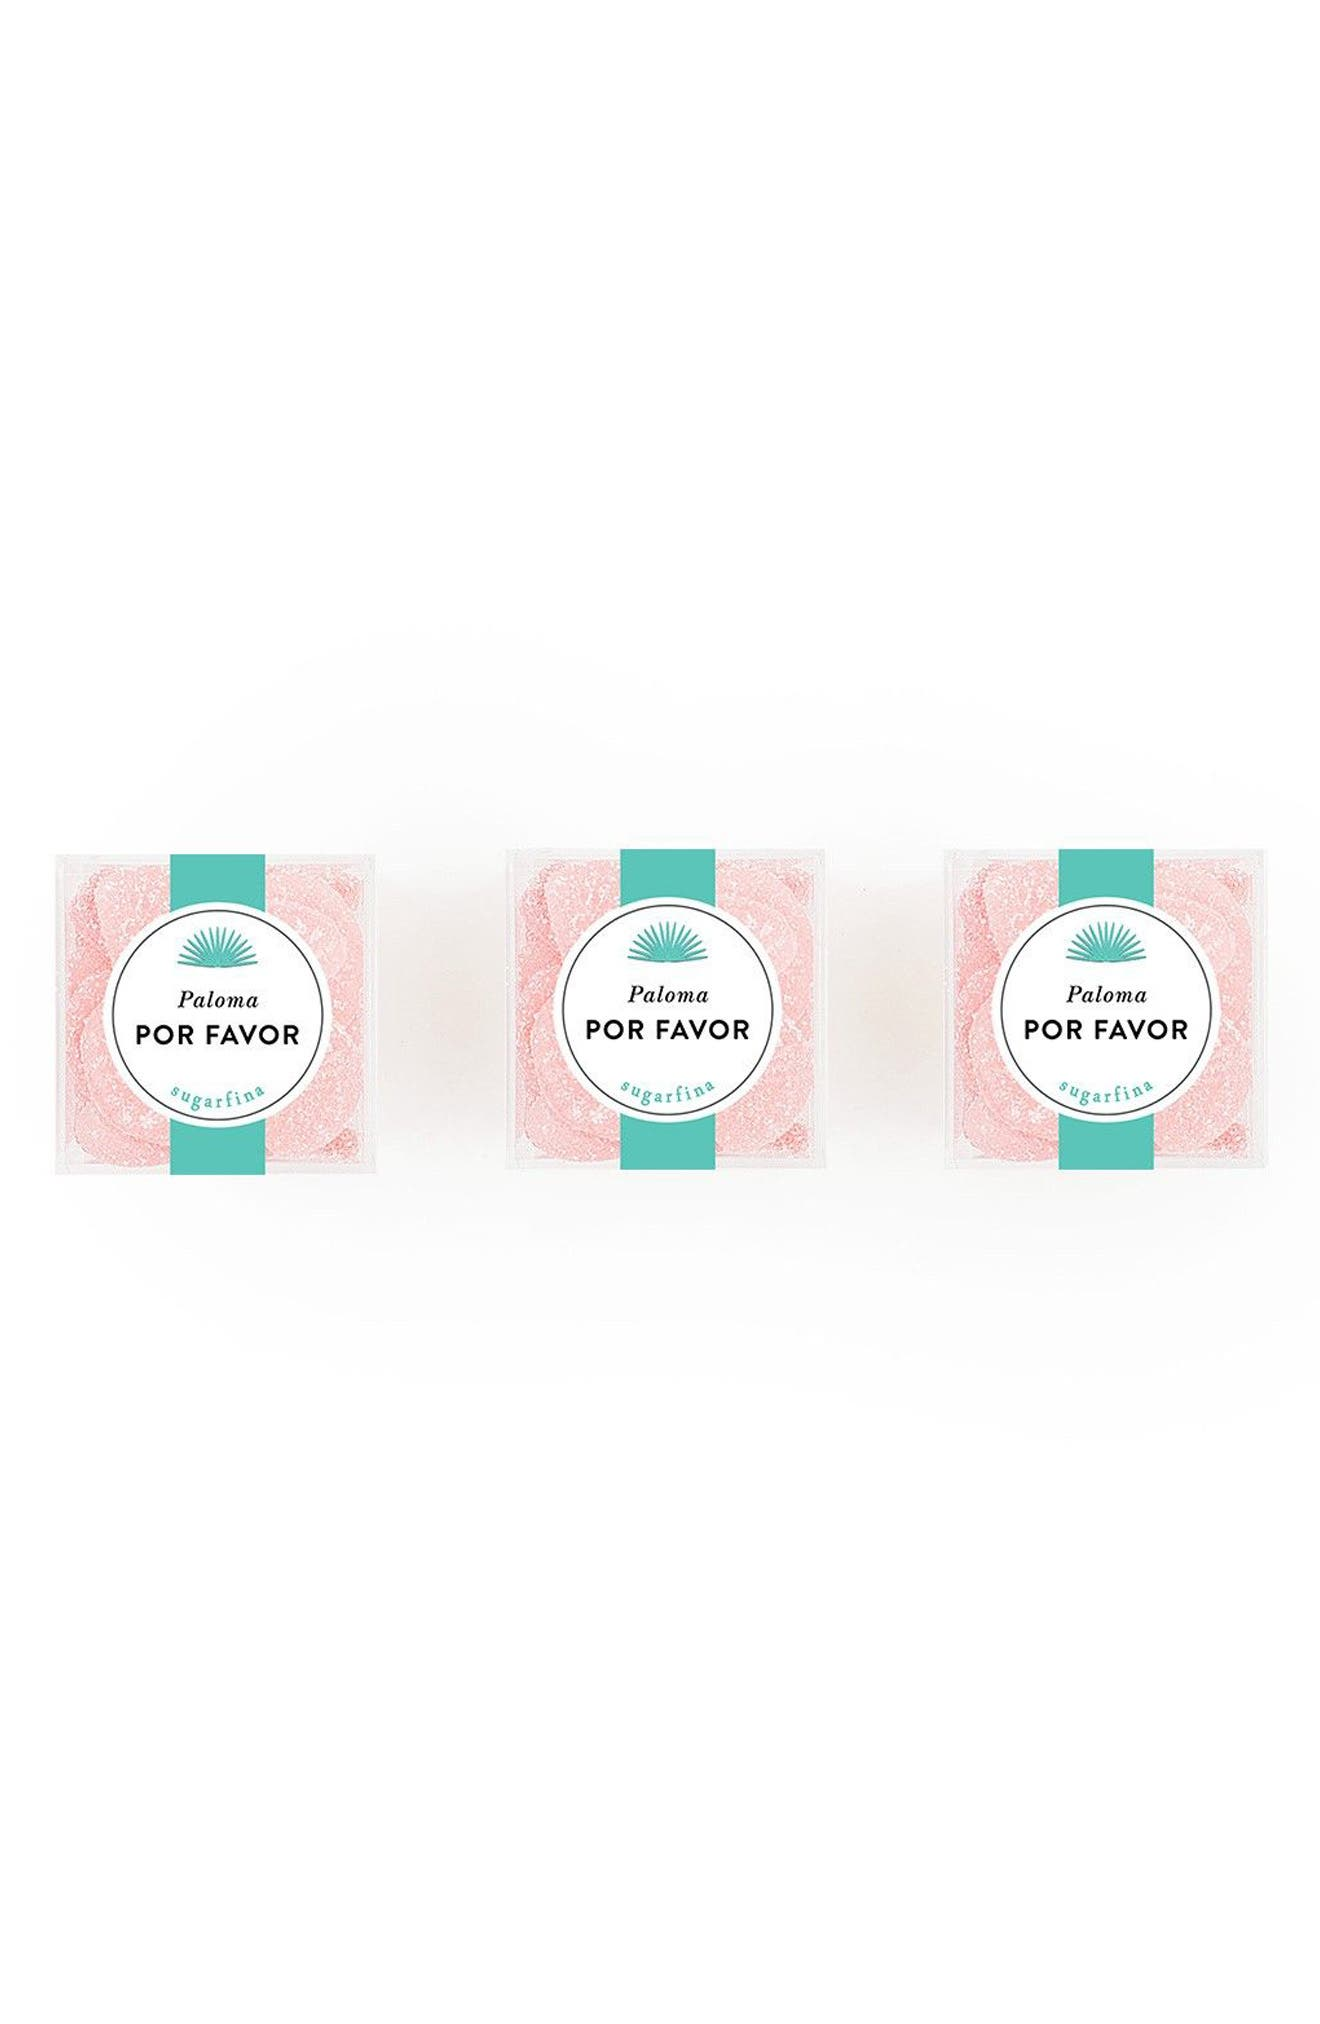 Alternate Image 1 Selected - sugarfina Casamigos - Paloma Por Favor Tequila Grapefruit Sours Gift Set